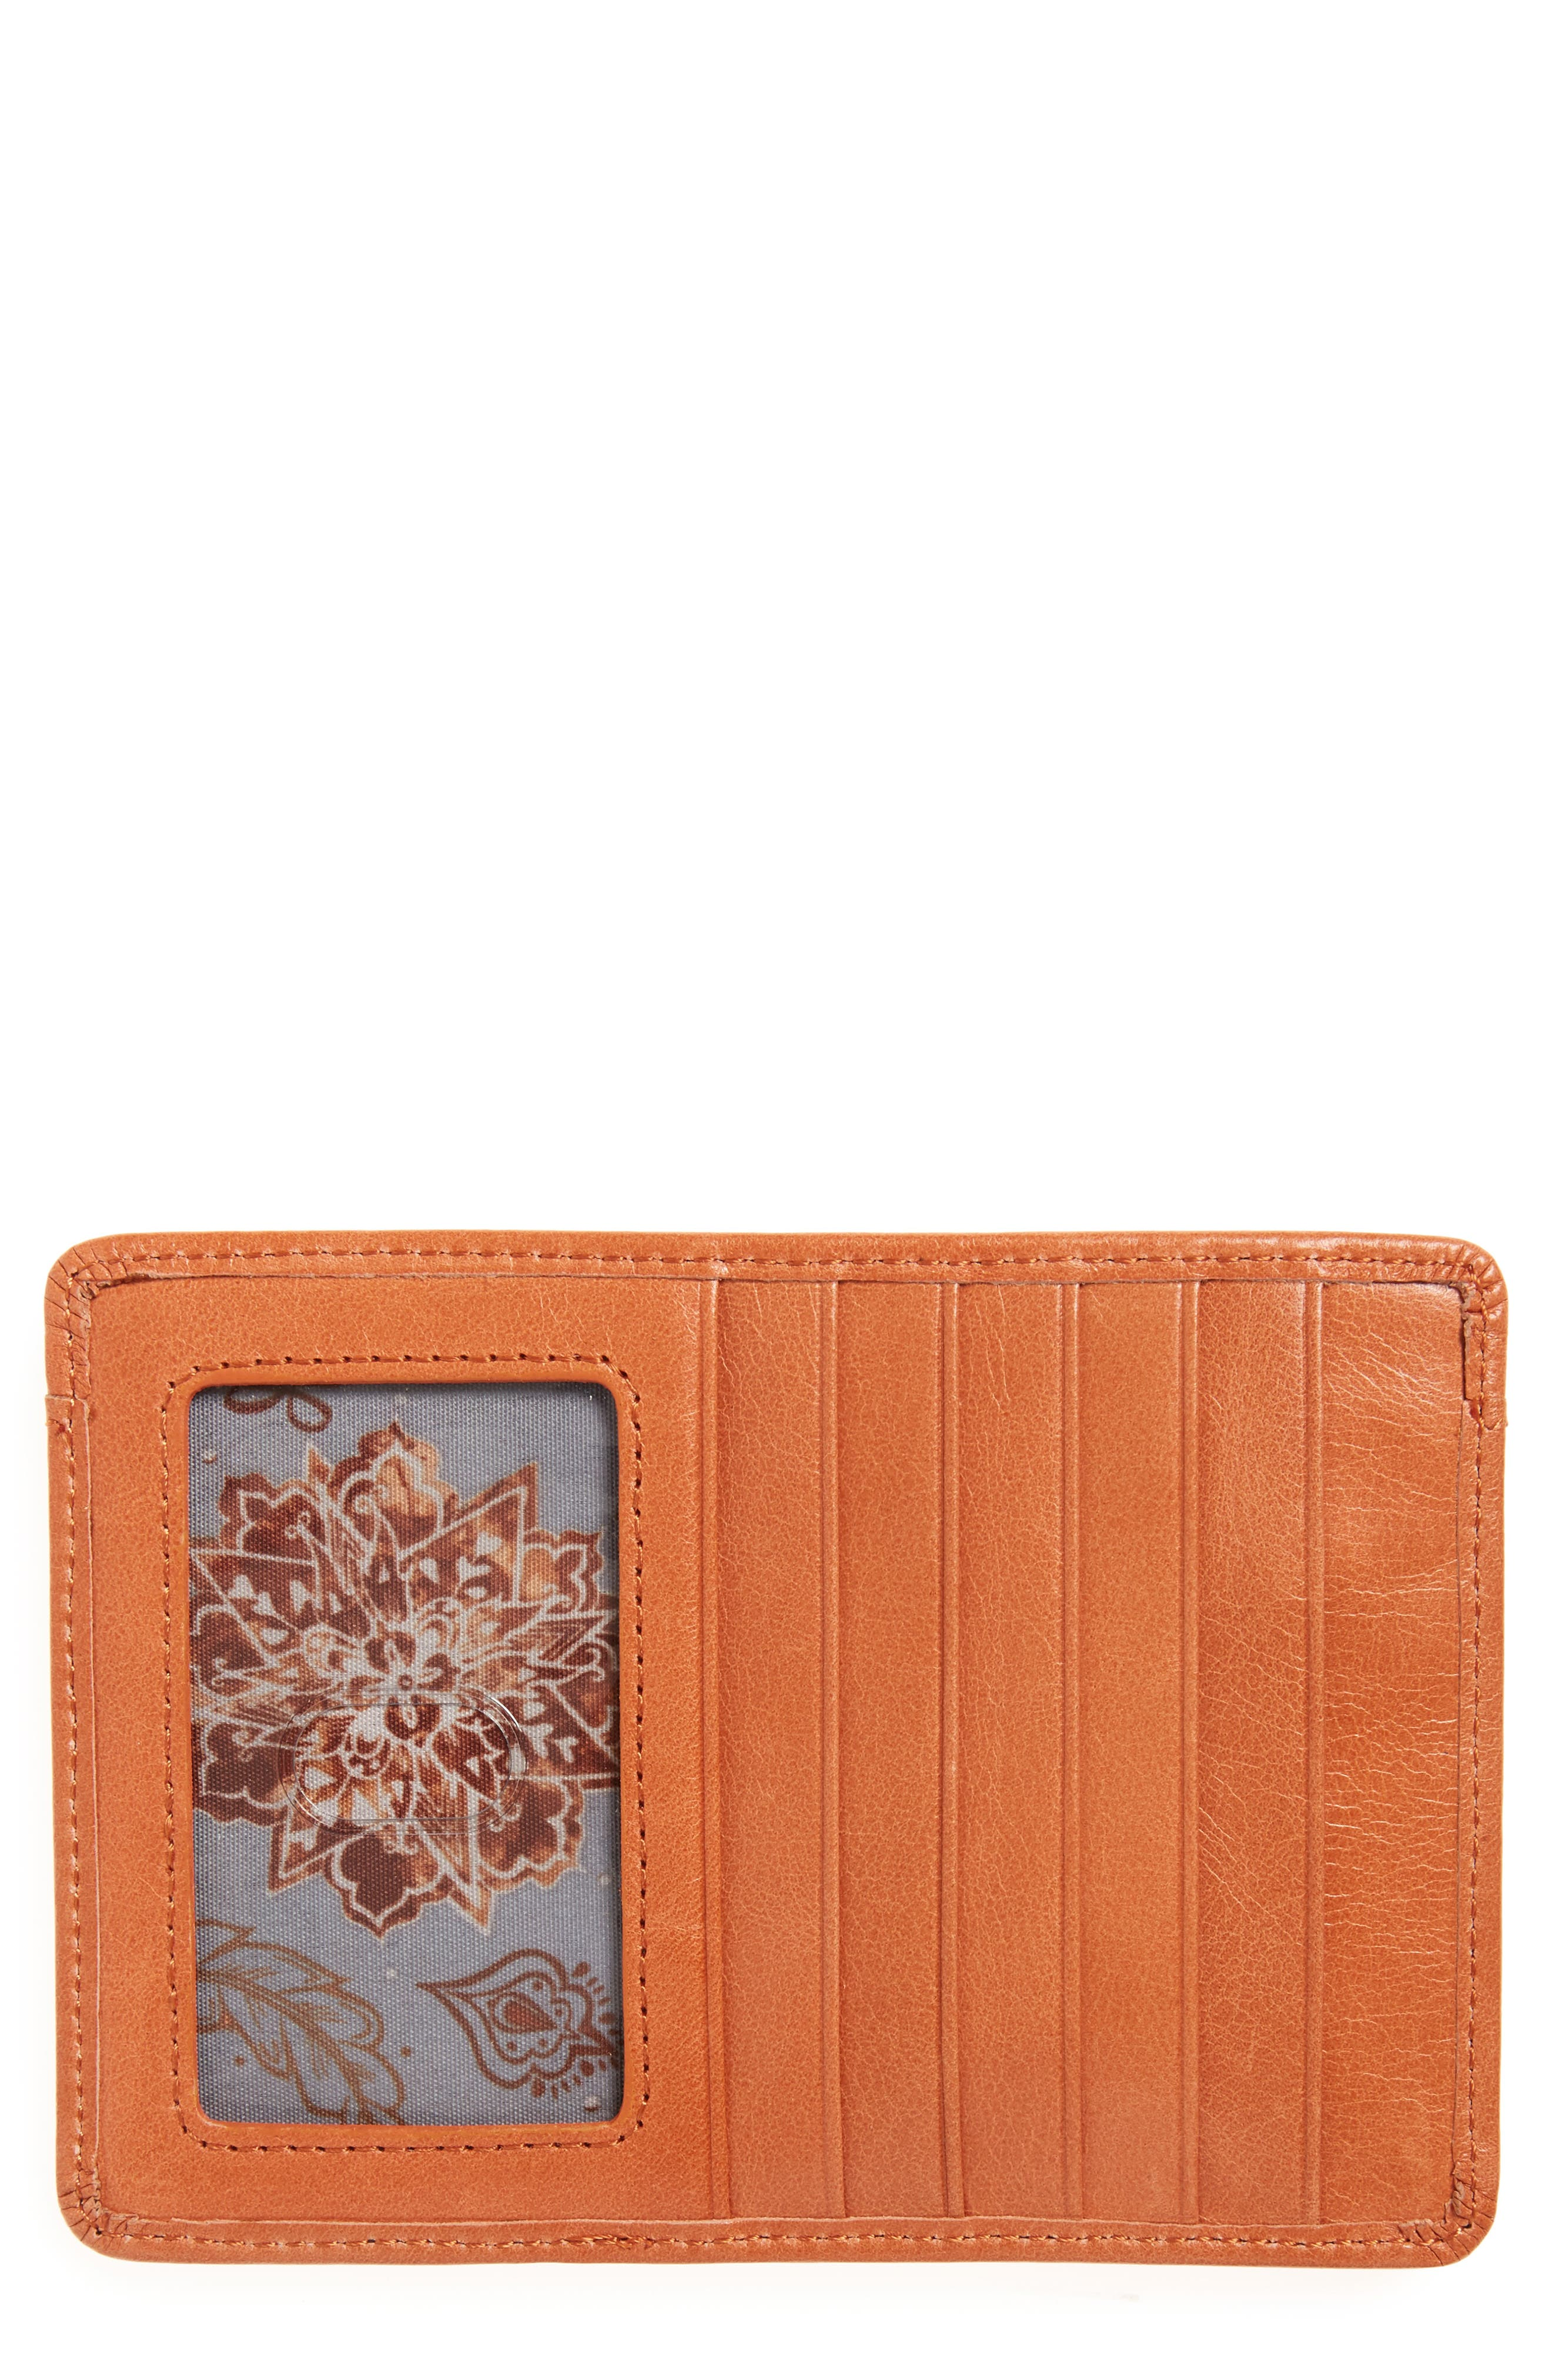 Hobo 'Euro Slide' Credit Card & Passport Case